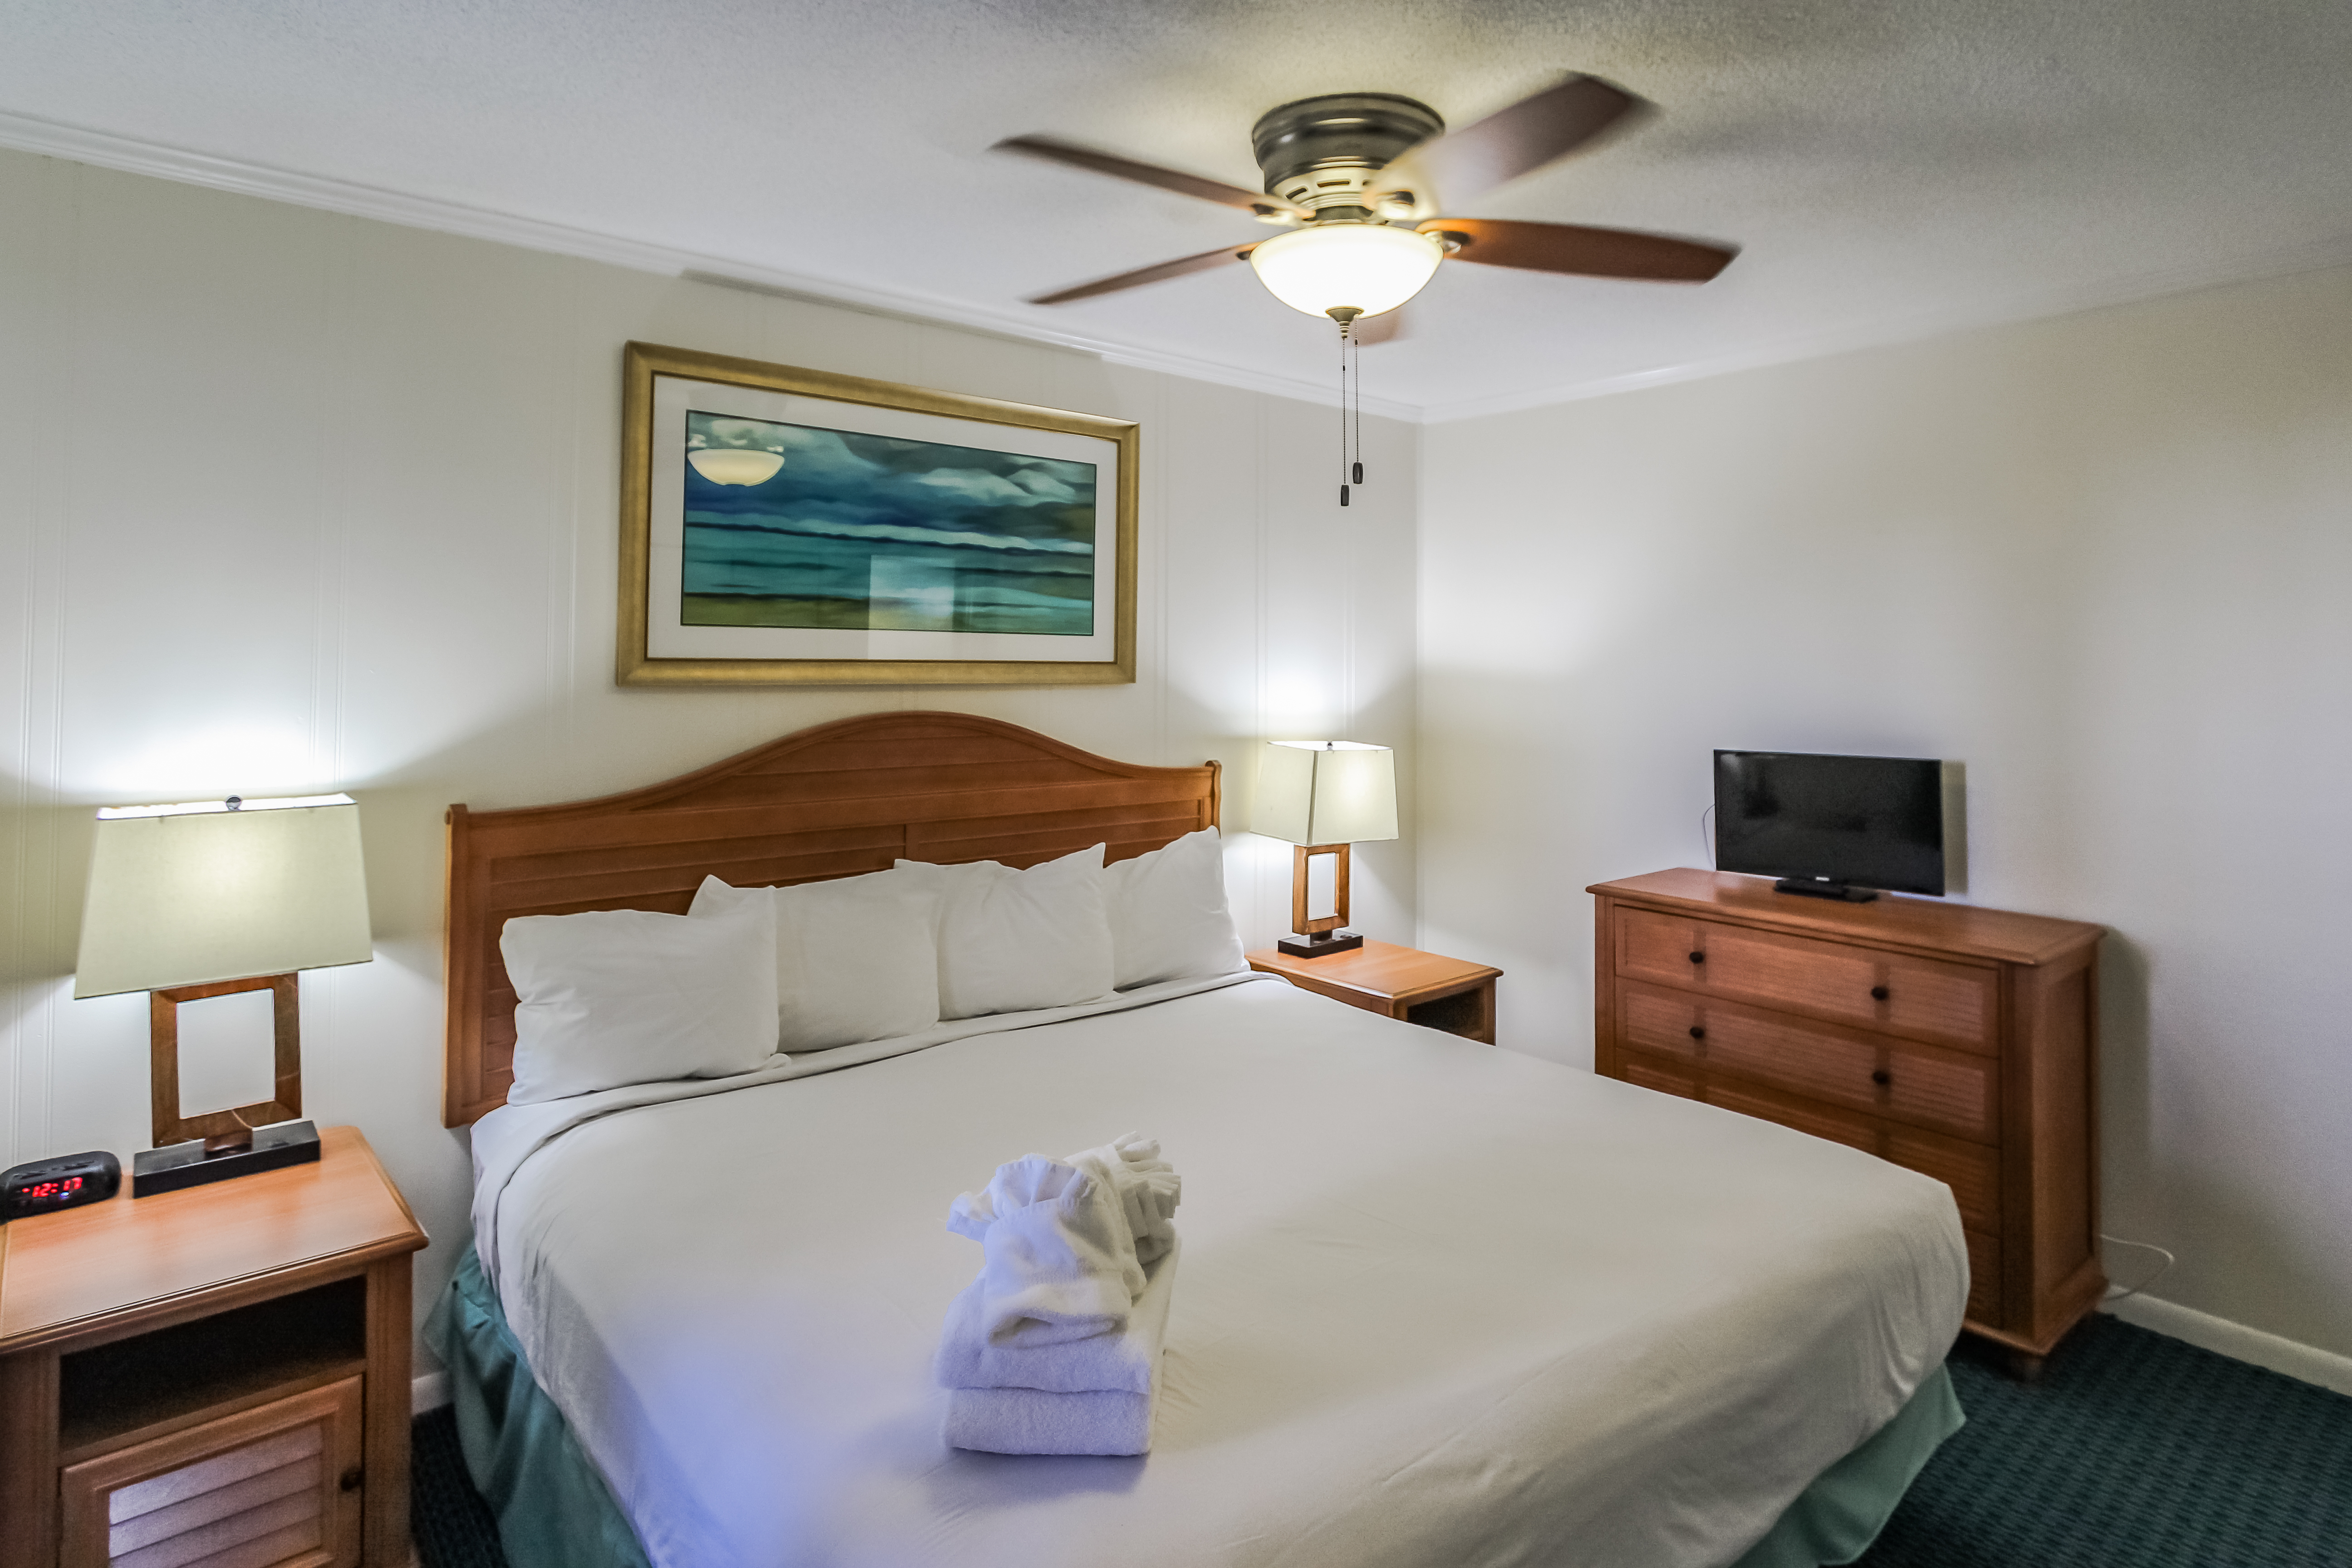 A spacious Master Bedroom at VRI's A Place at the Beach III in North Carolina